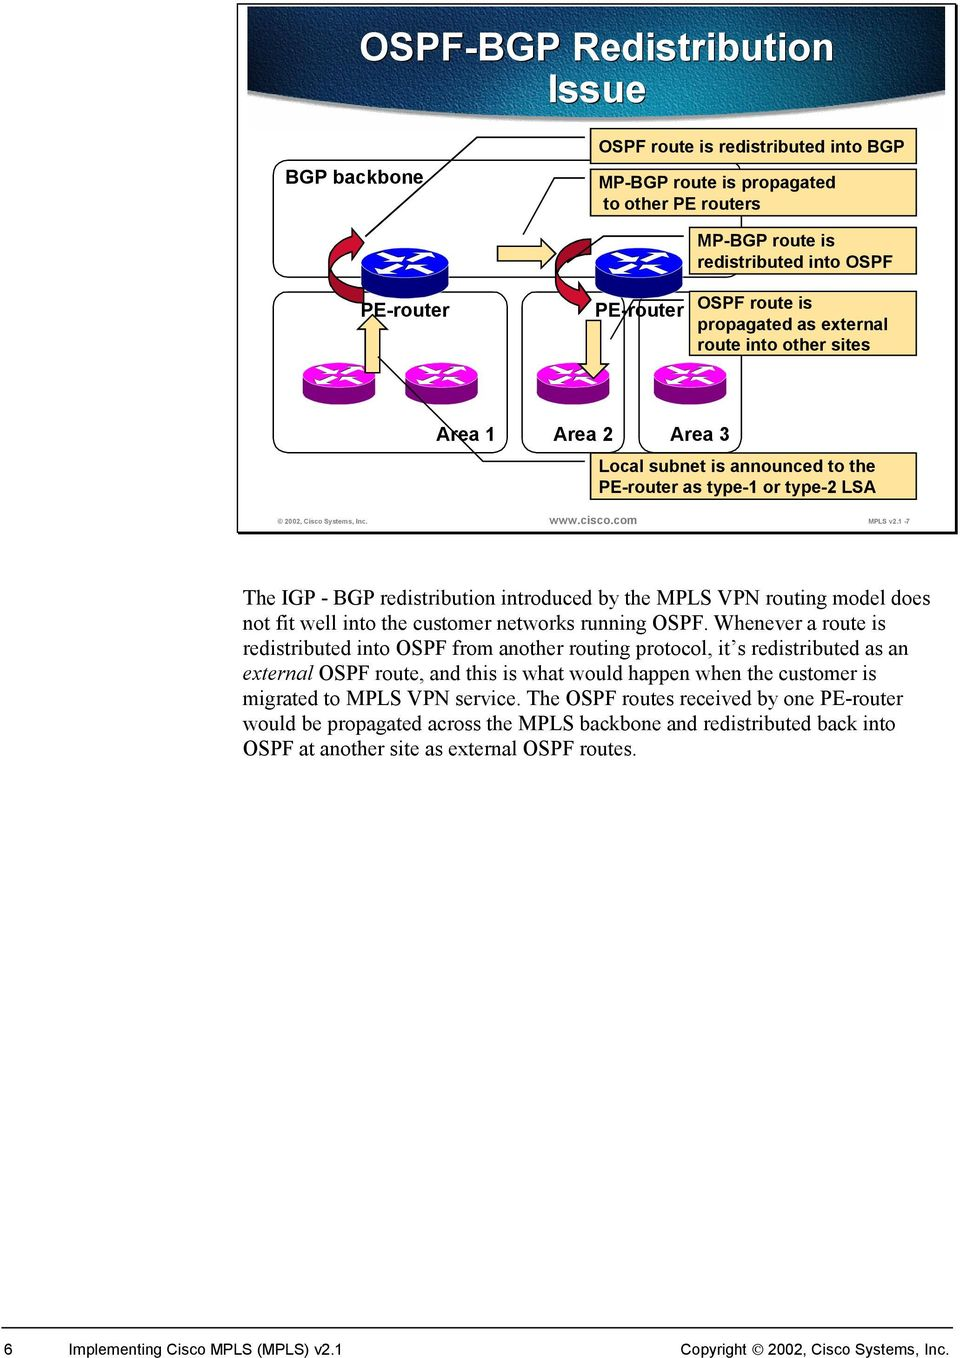 1-7 The IGP - BGP redistribution introduced by the MPLS VPN routing model does not fit well into the customer networks running OSPF.